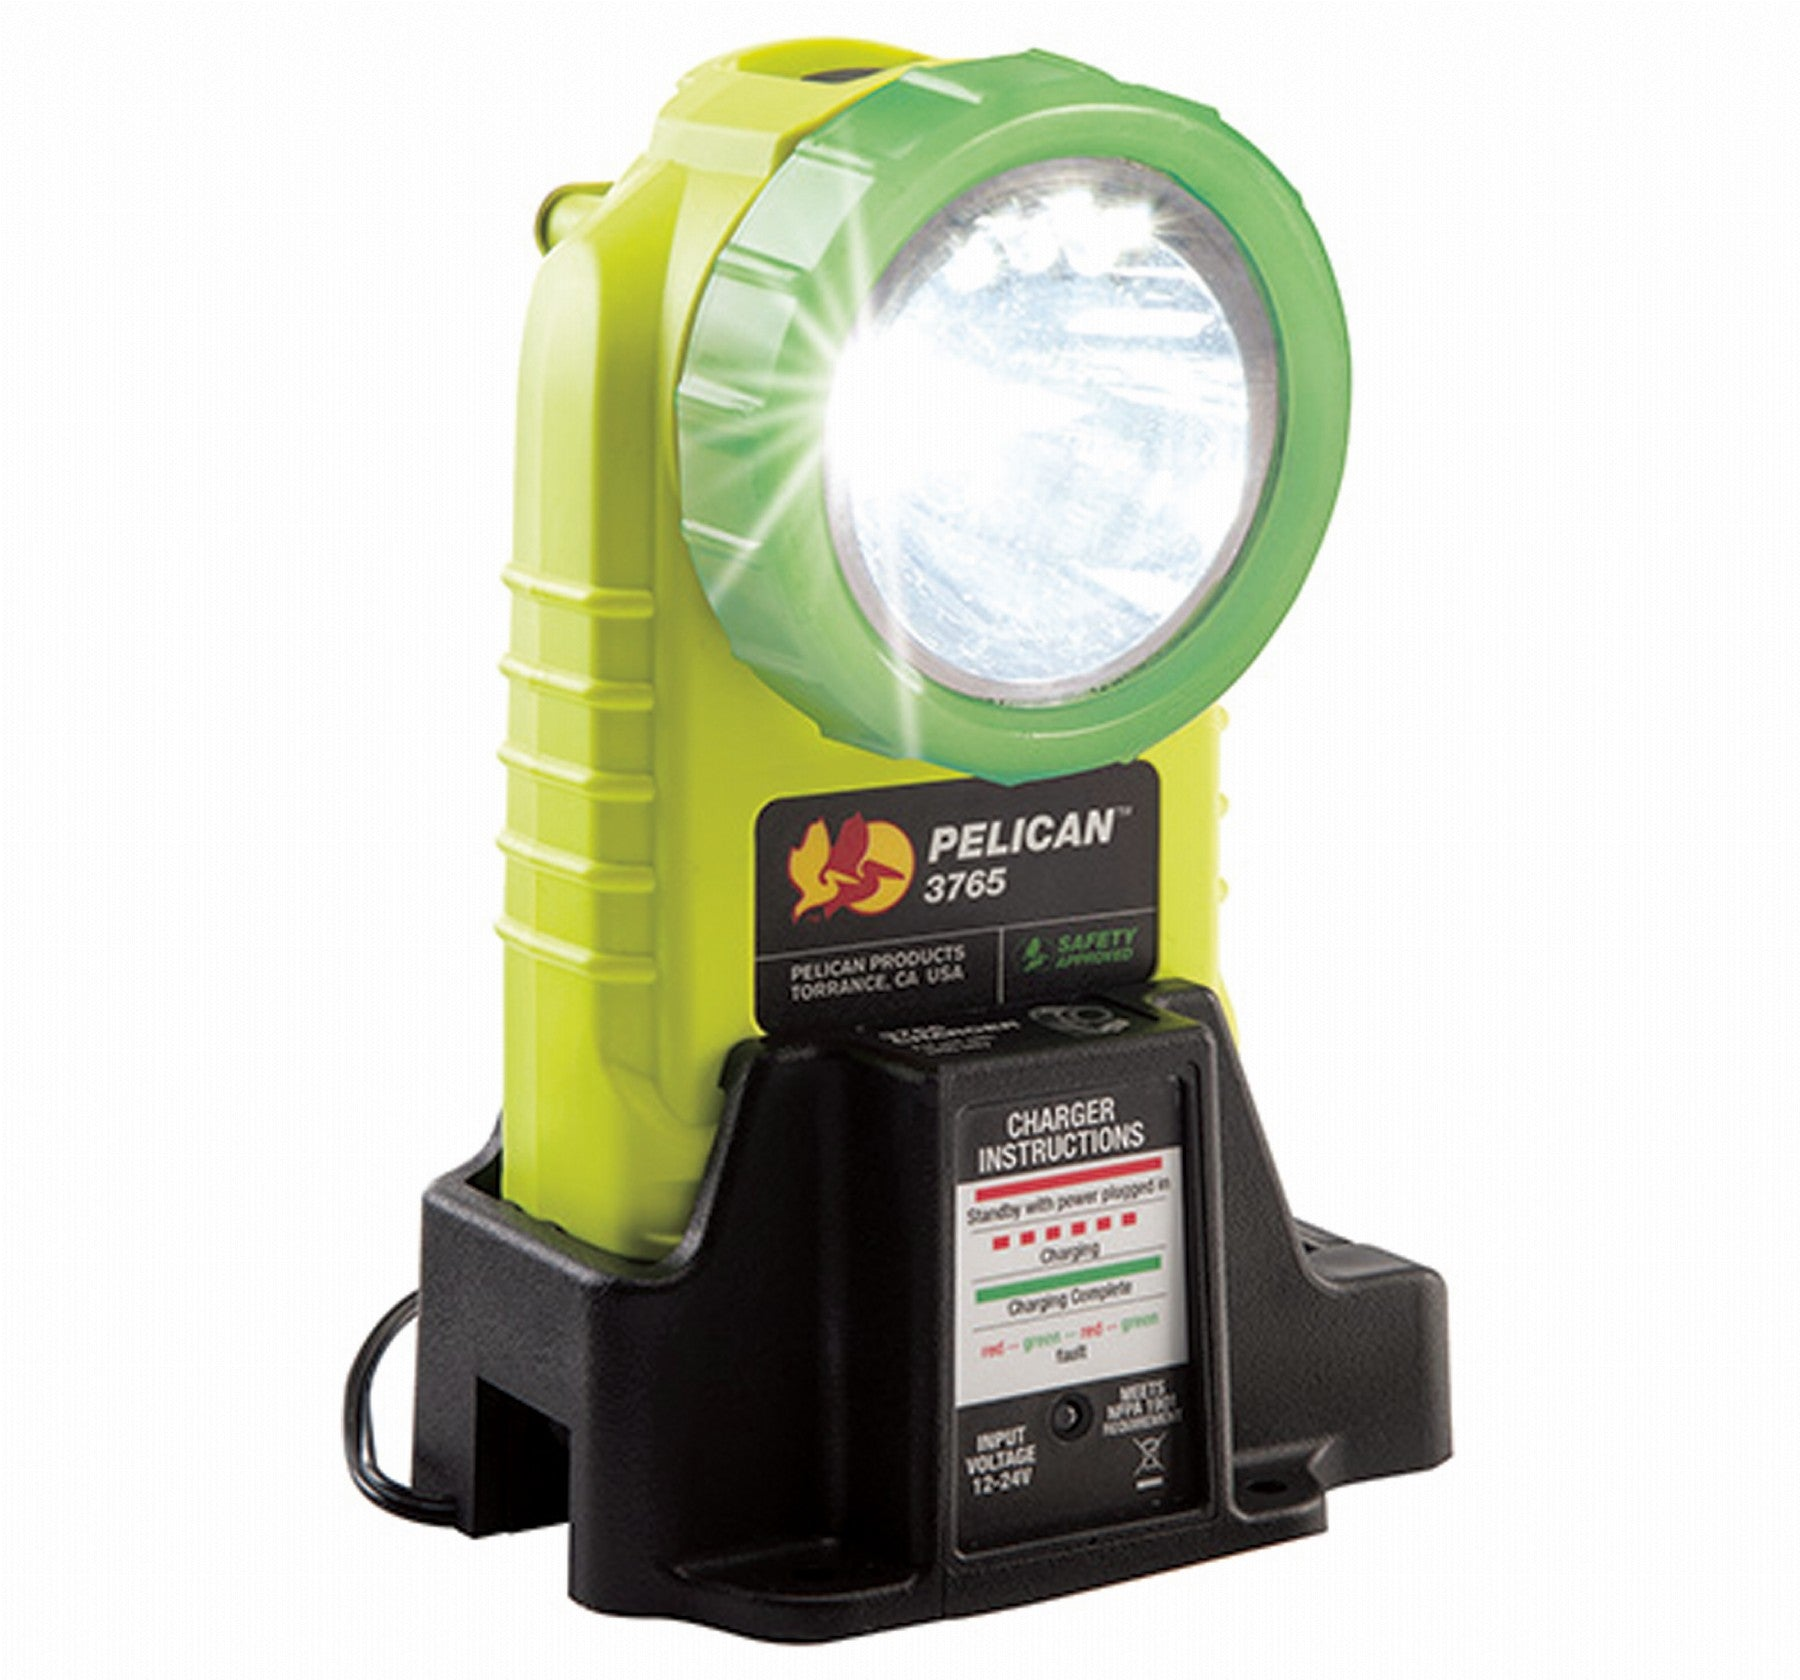 Pelican 3765LED Rechargeable Photoluminescent Torch